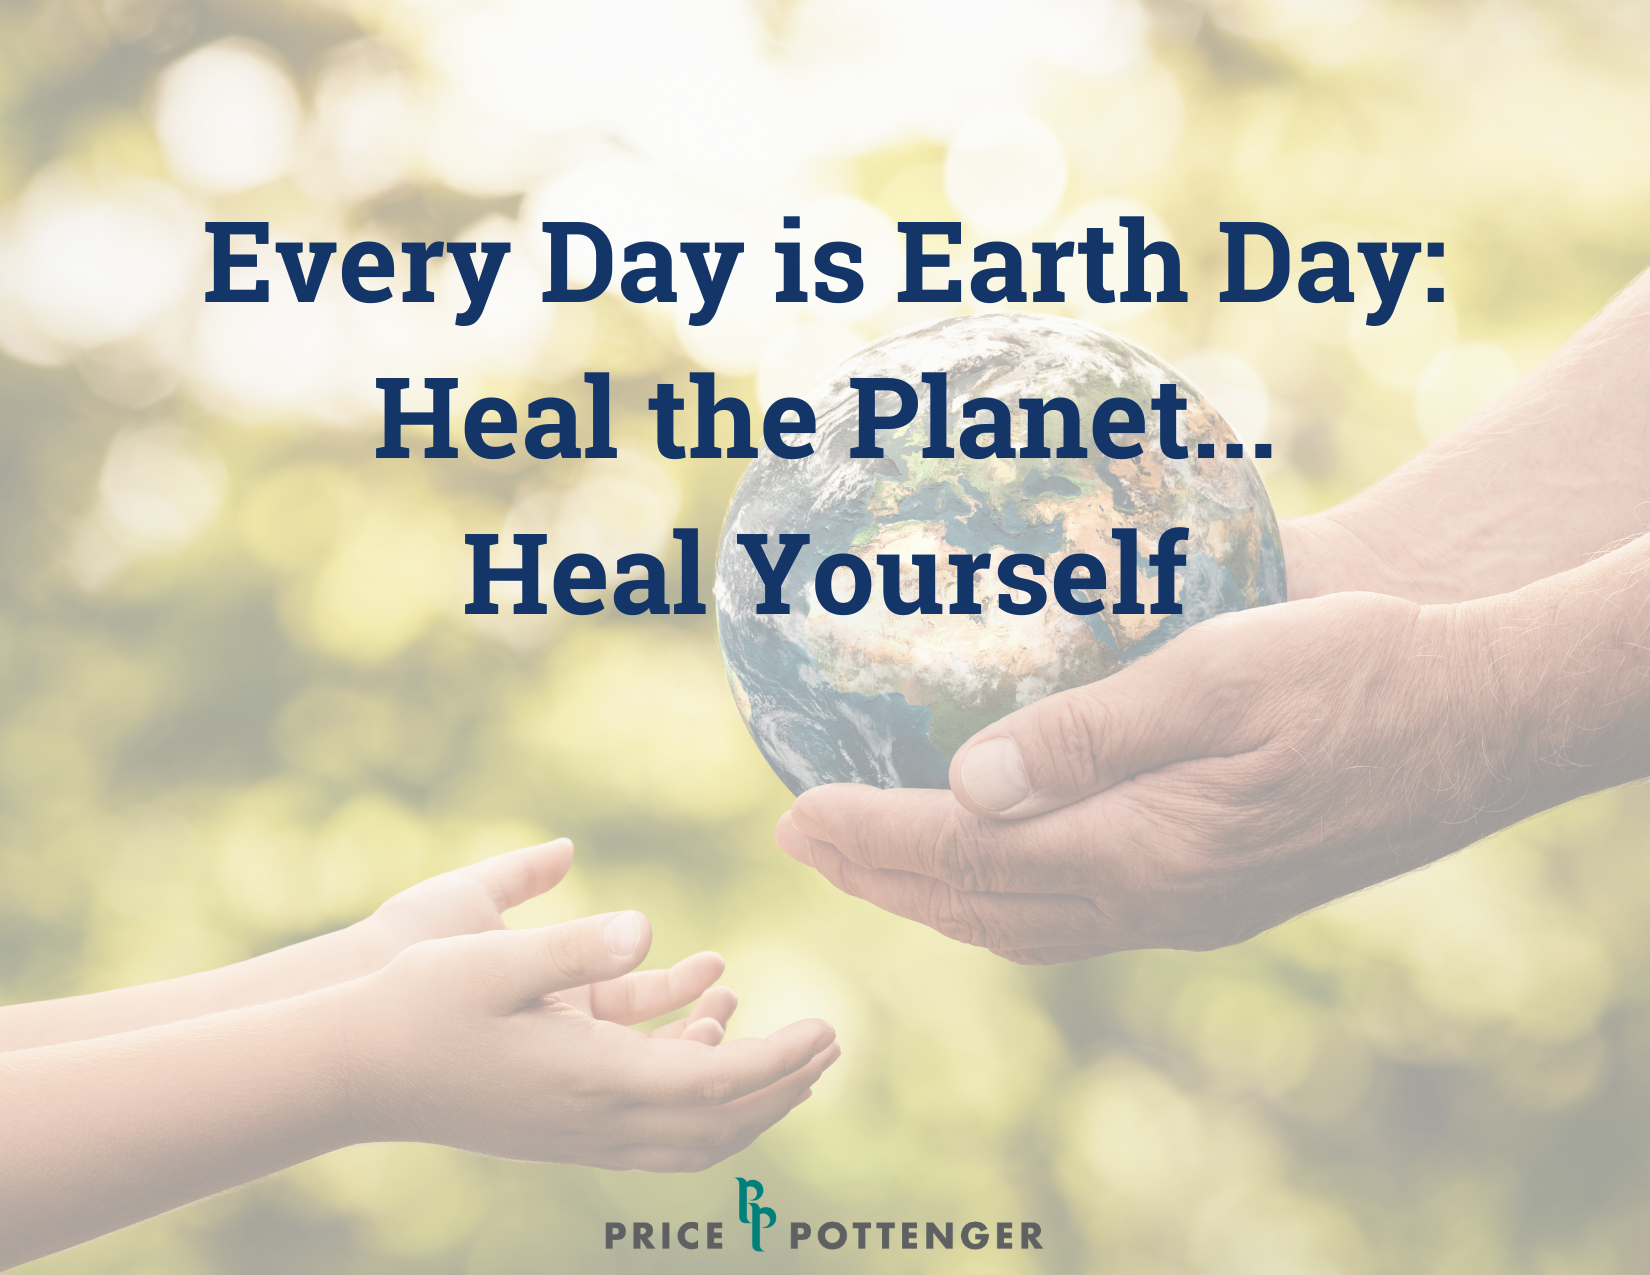 How you can create a healthy future for you and the planet